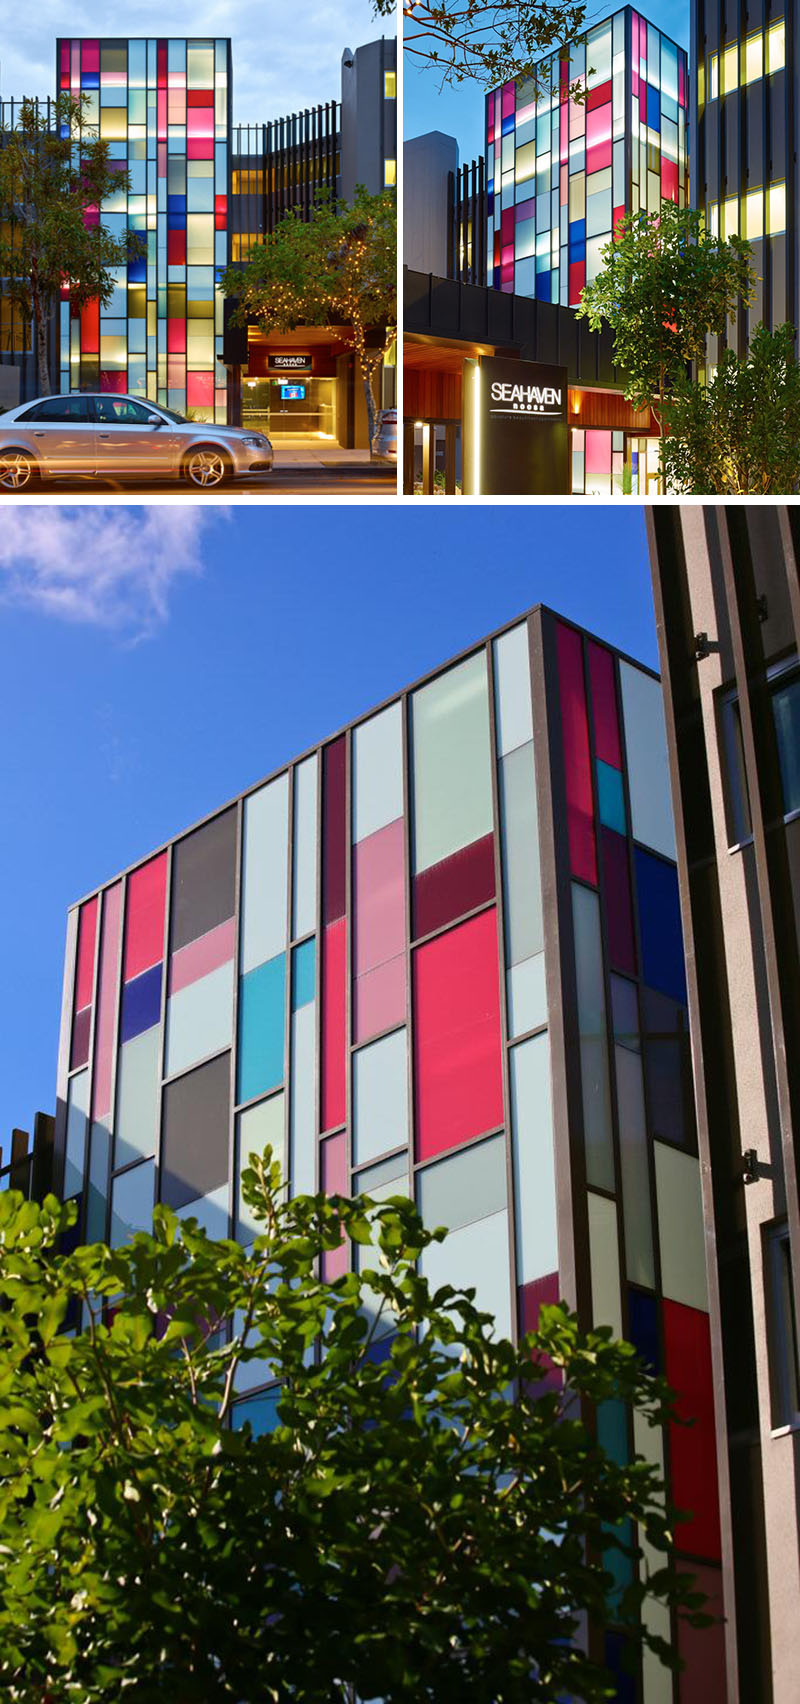 Modern Architecture Color 10 examples of colored glass found in modern architecture and